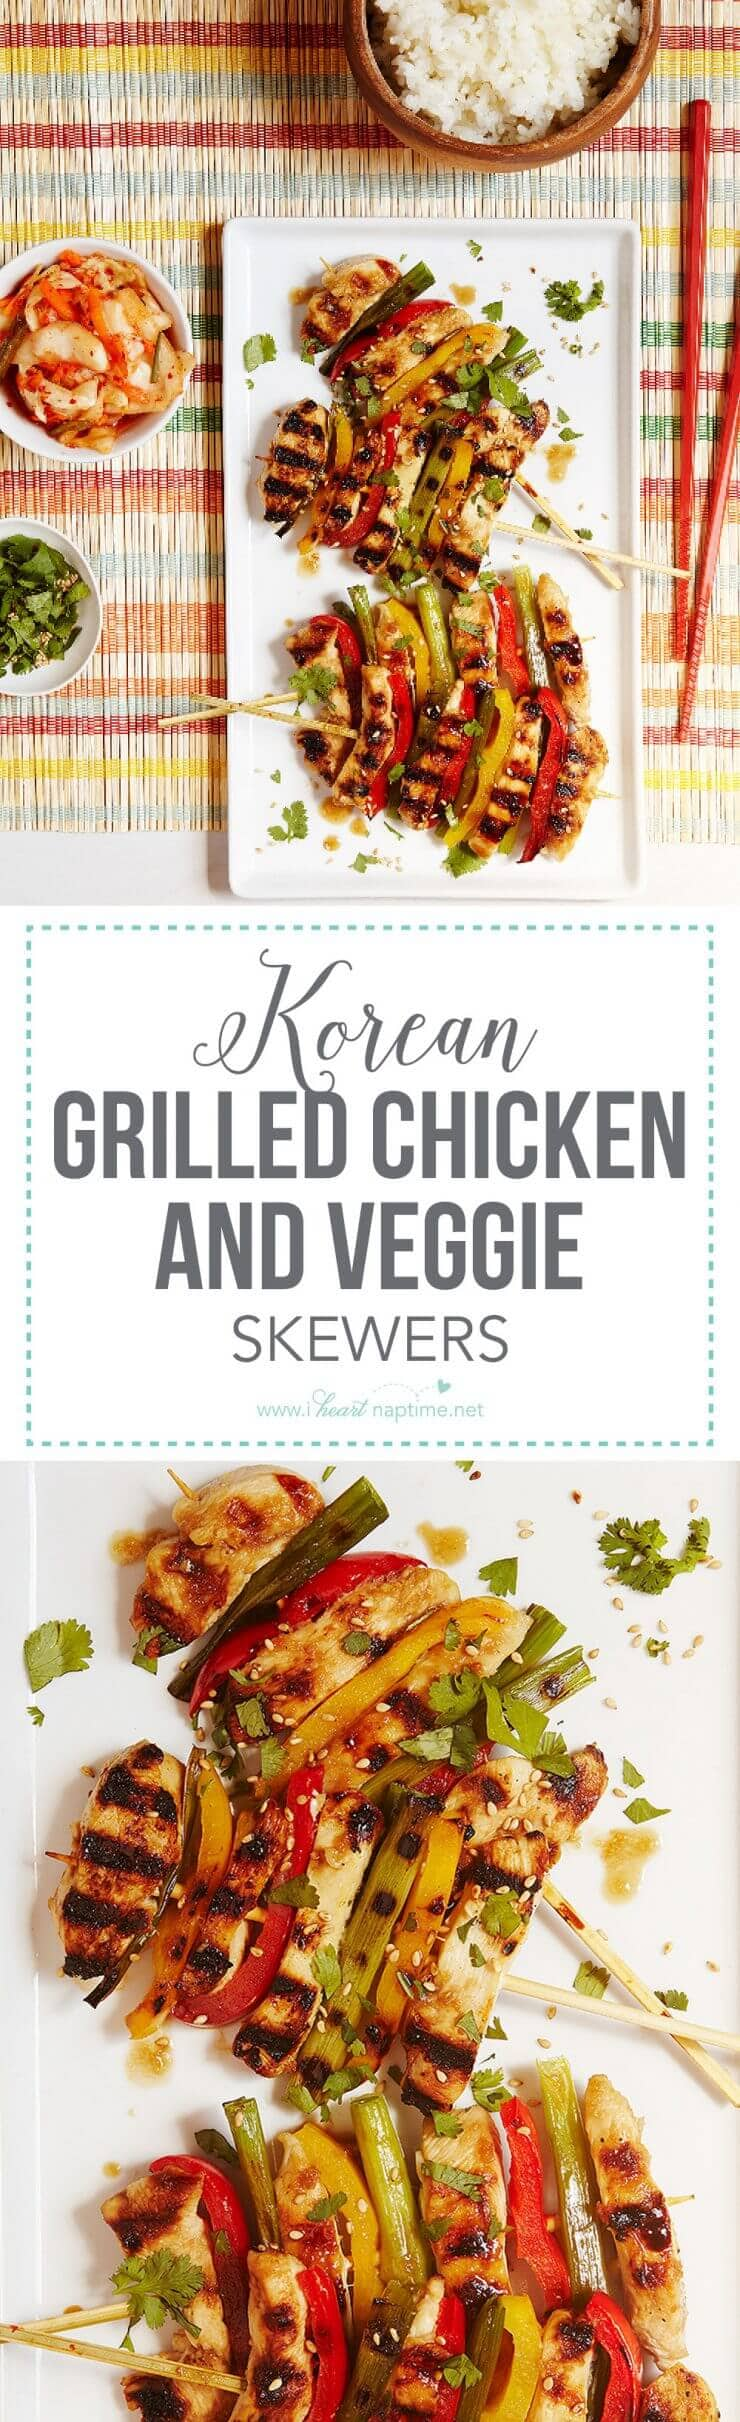 Korean Grilled Chicken and Veggie Skewers – bring authentic cooking home with a simple marinade, tender chicken and colorful vegetables.